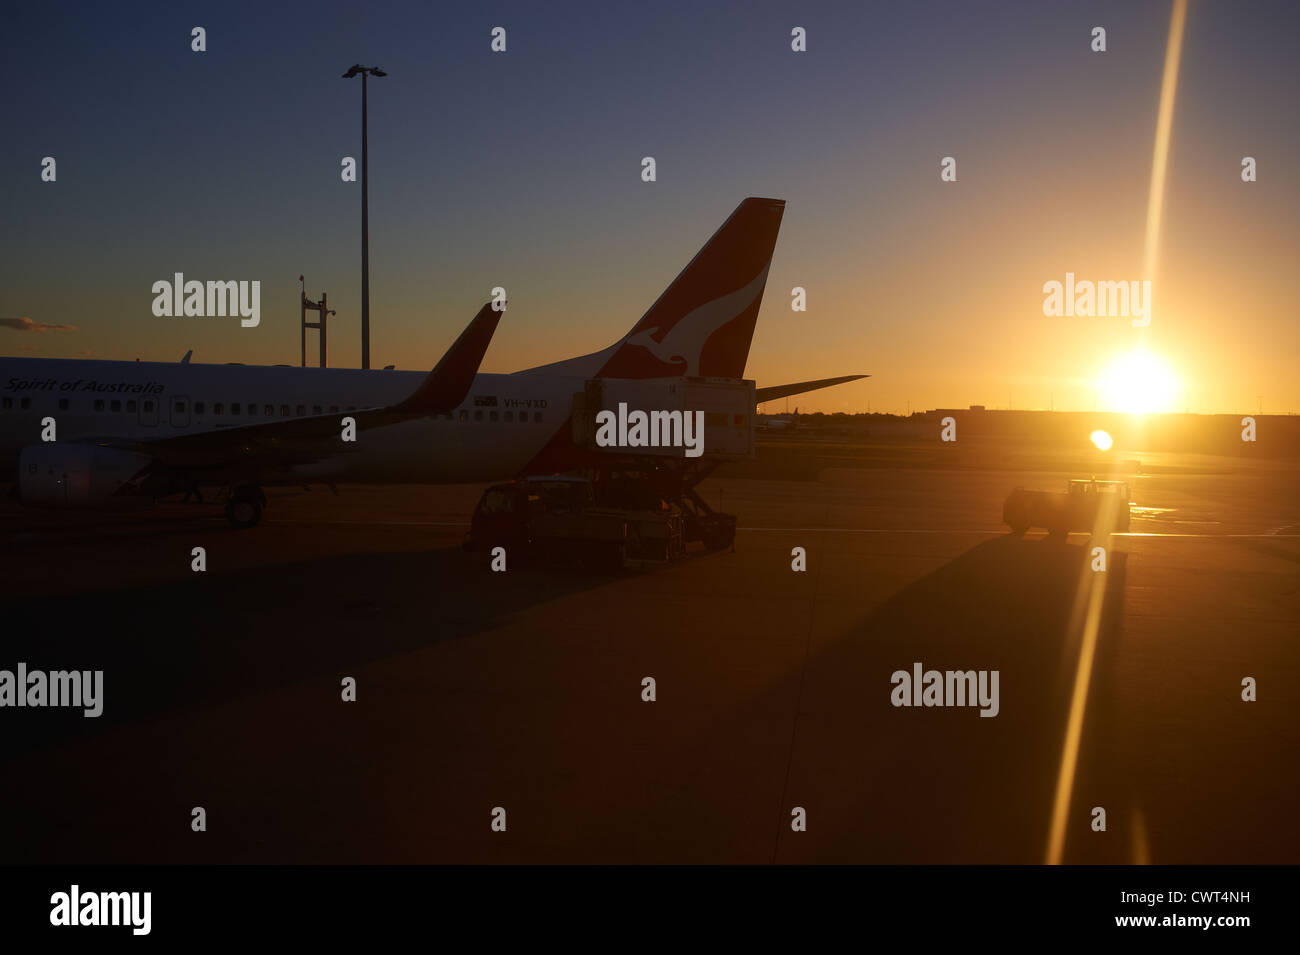 Qantas jets in silhouette on the tarmac at the Brisbane airport terminal Australia Stock Photo